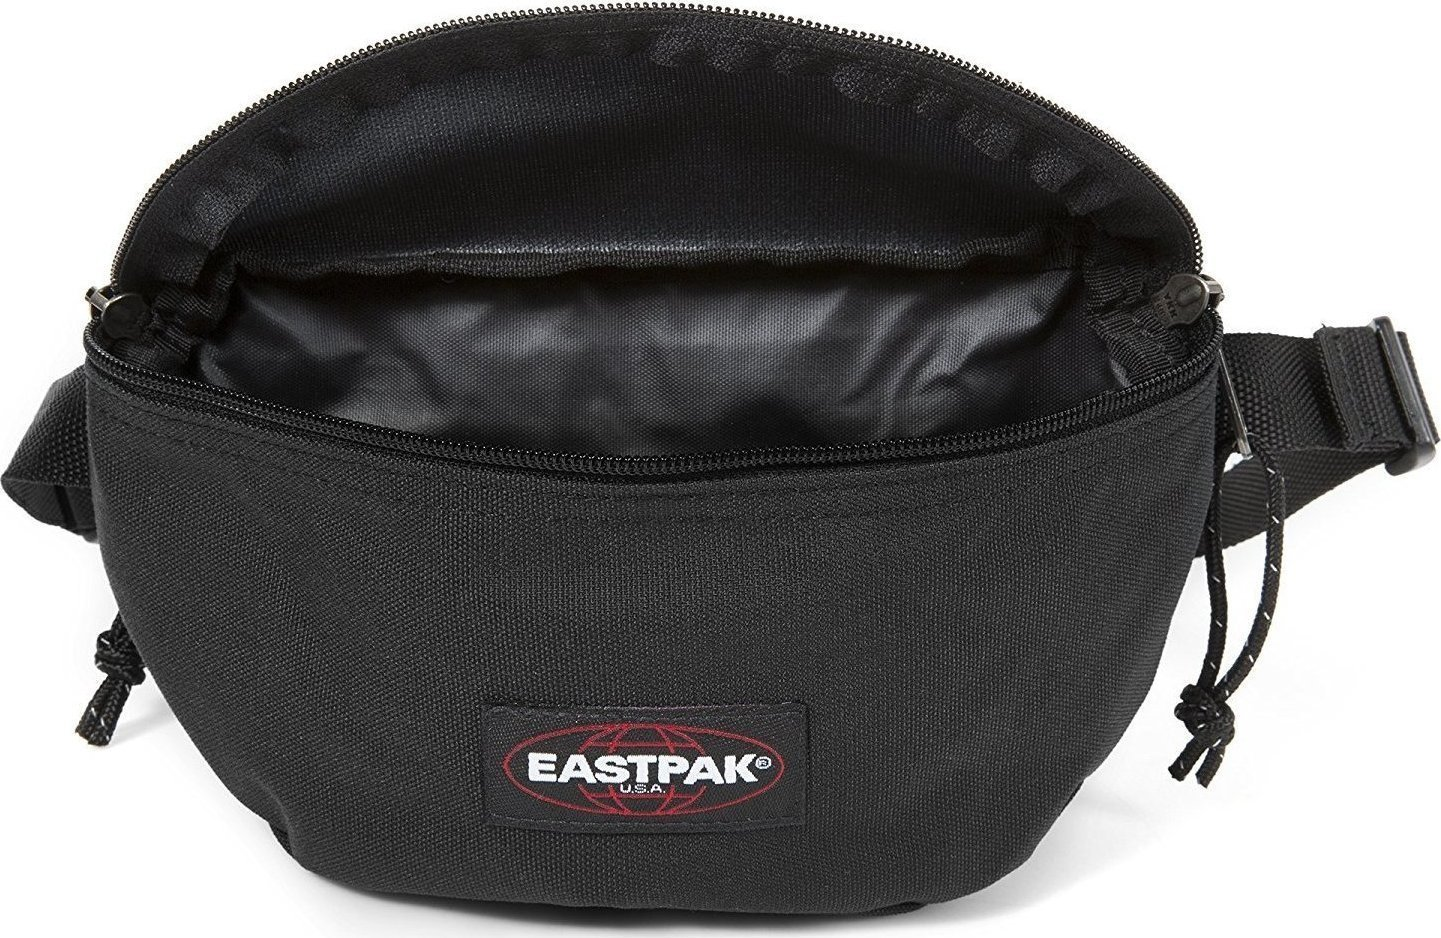 25ed06d5e1 Προσθήκη στα αγαπημένα menu Eastpak Springer Black. Eastpak Springer Black  Eastpak  Springer Black  Eastpak Springer Black ...